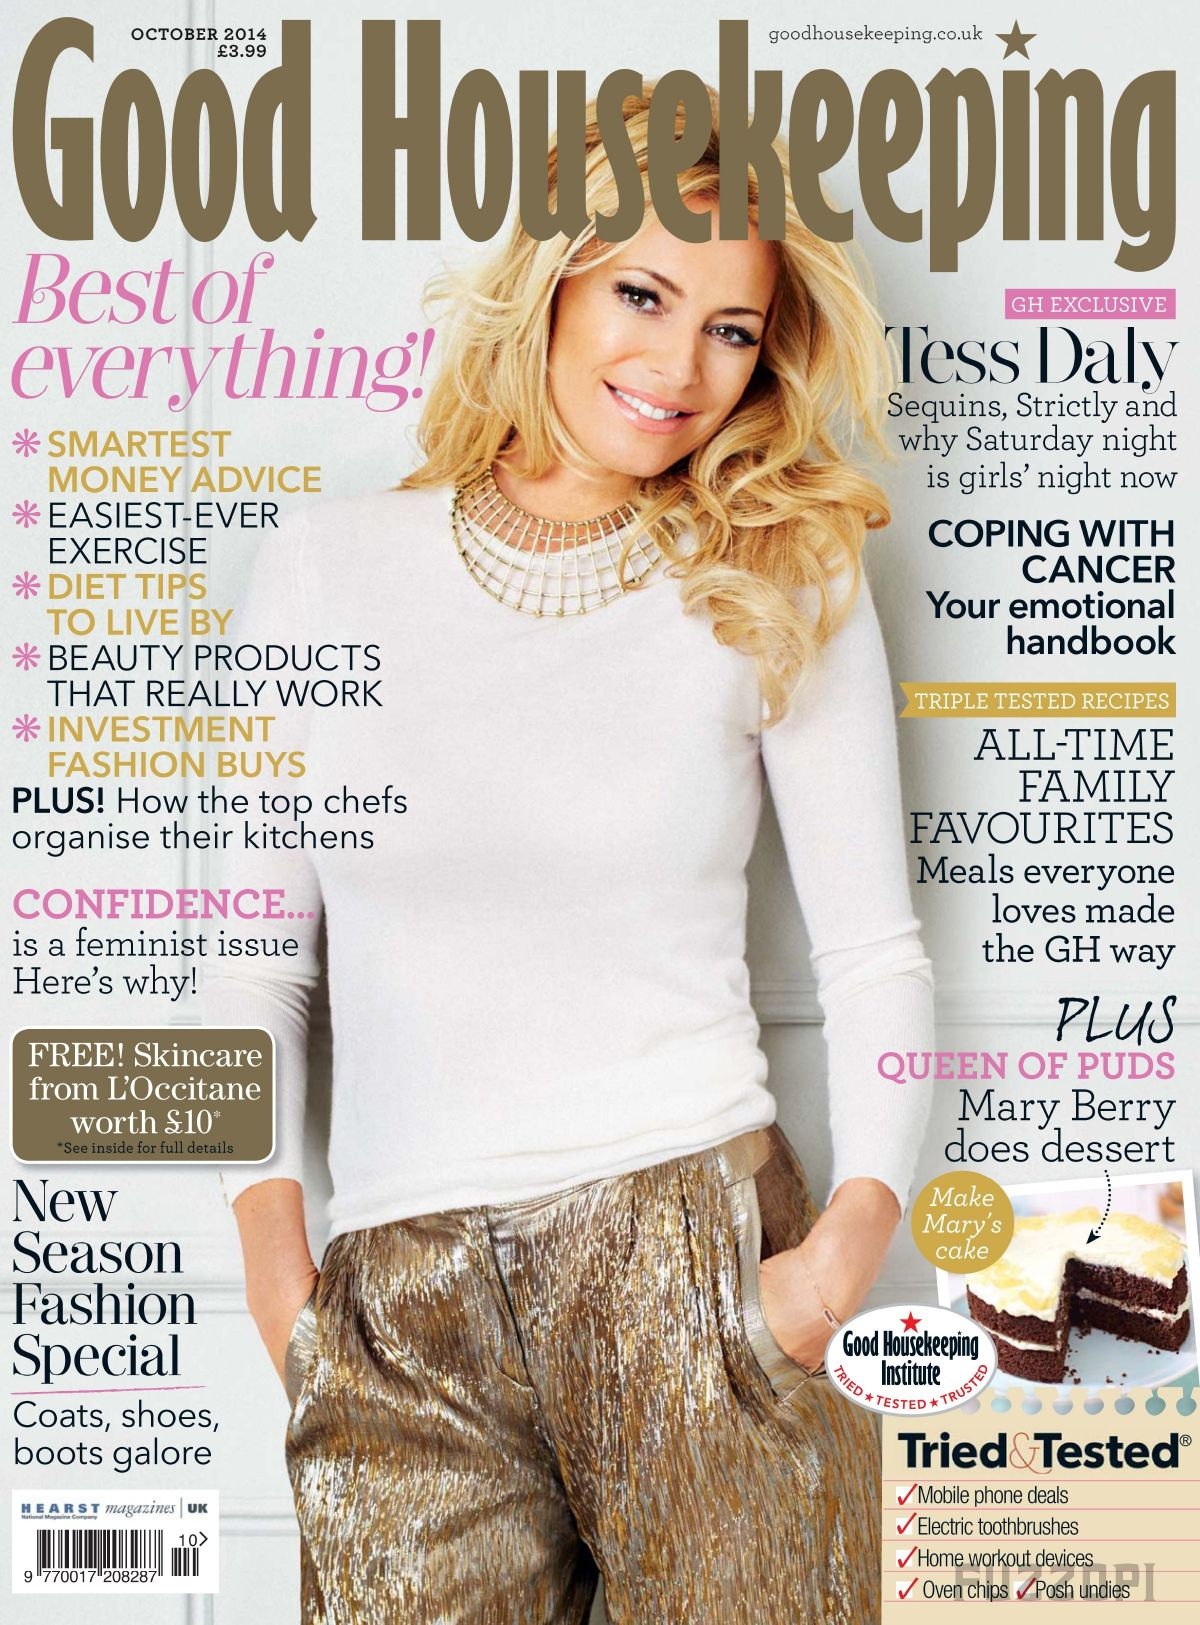 TESS DALY on the Cover of Good Housekeeping Magazine, October 2014 Issue